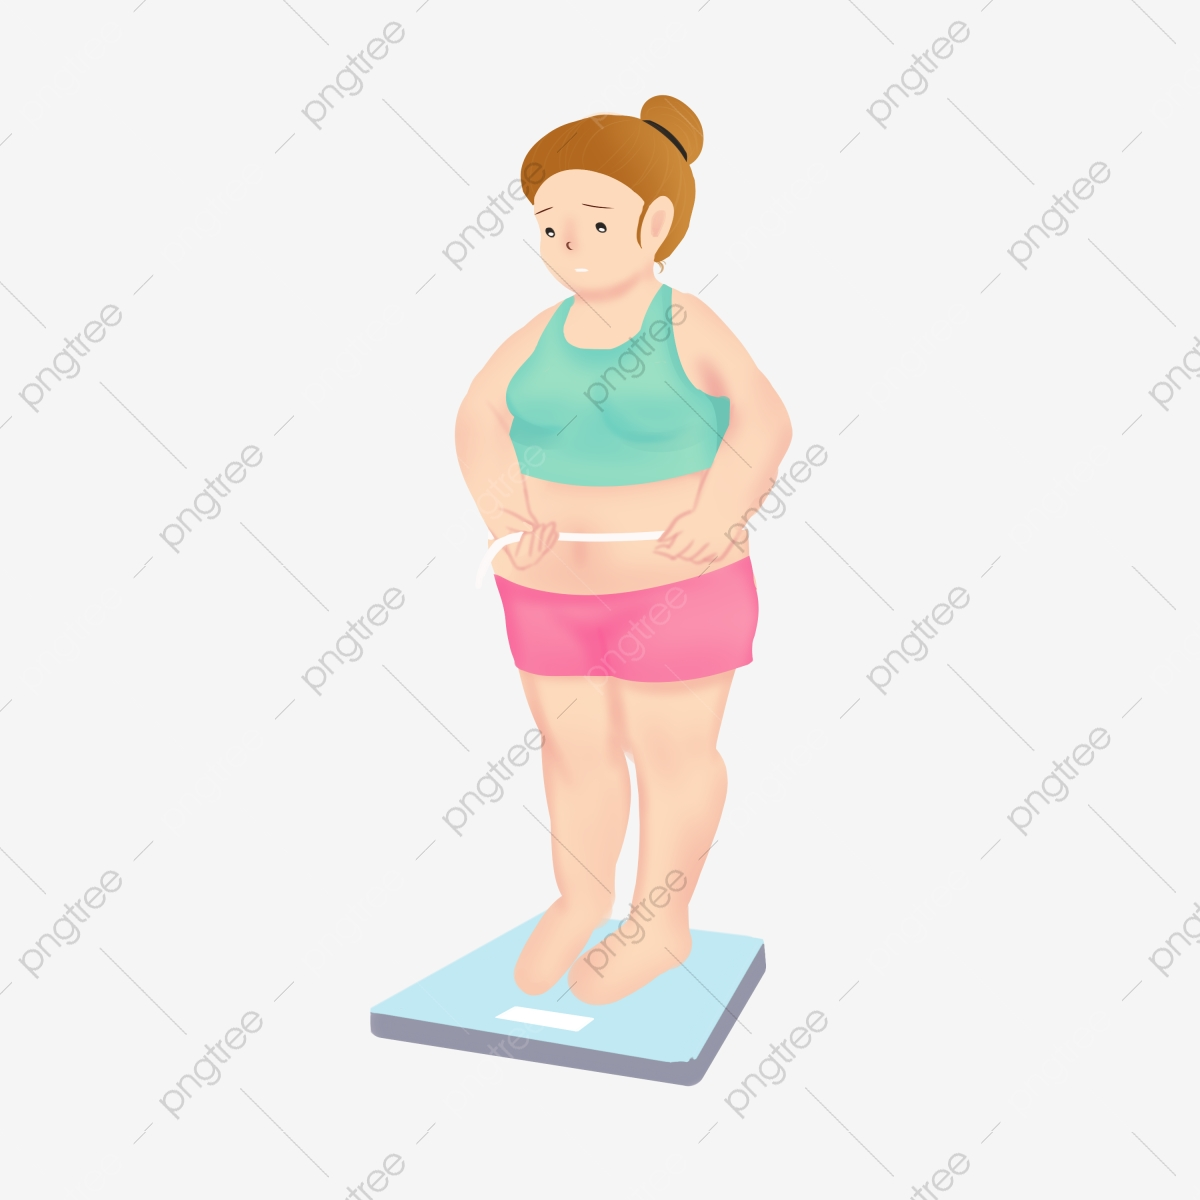 Weight Loss Character Movement Free Buckle Material Weighing Fitness Weight Loss Exercise Png Transparent Clipart Image And Psd File For Free Download